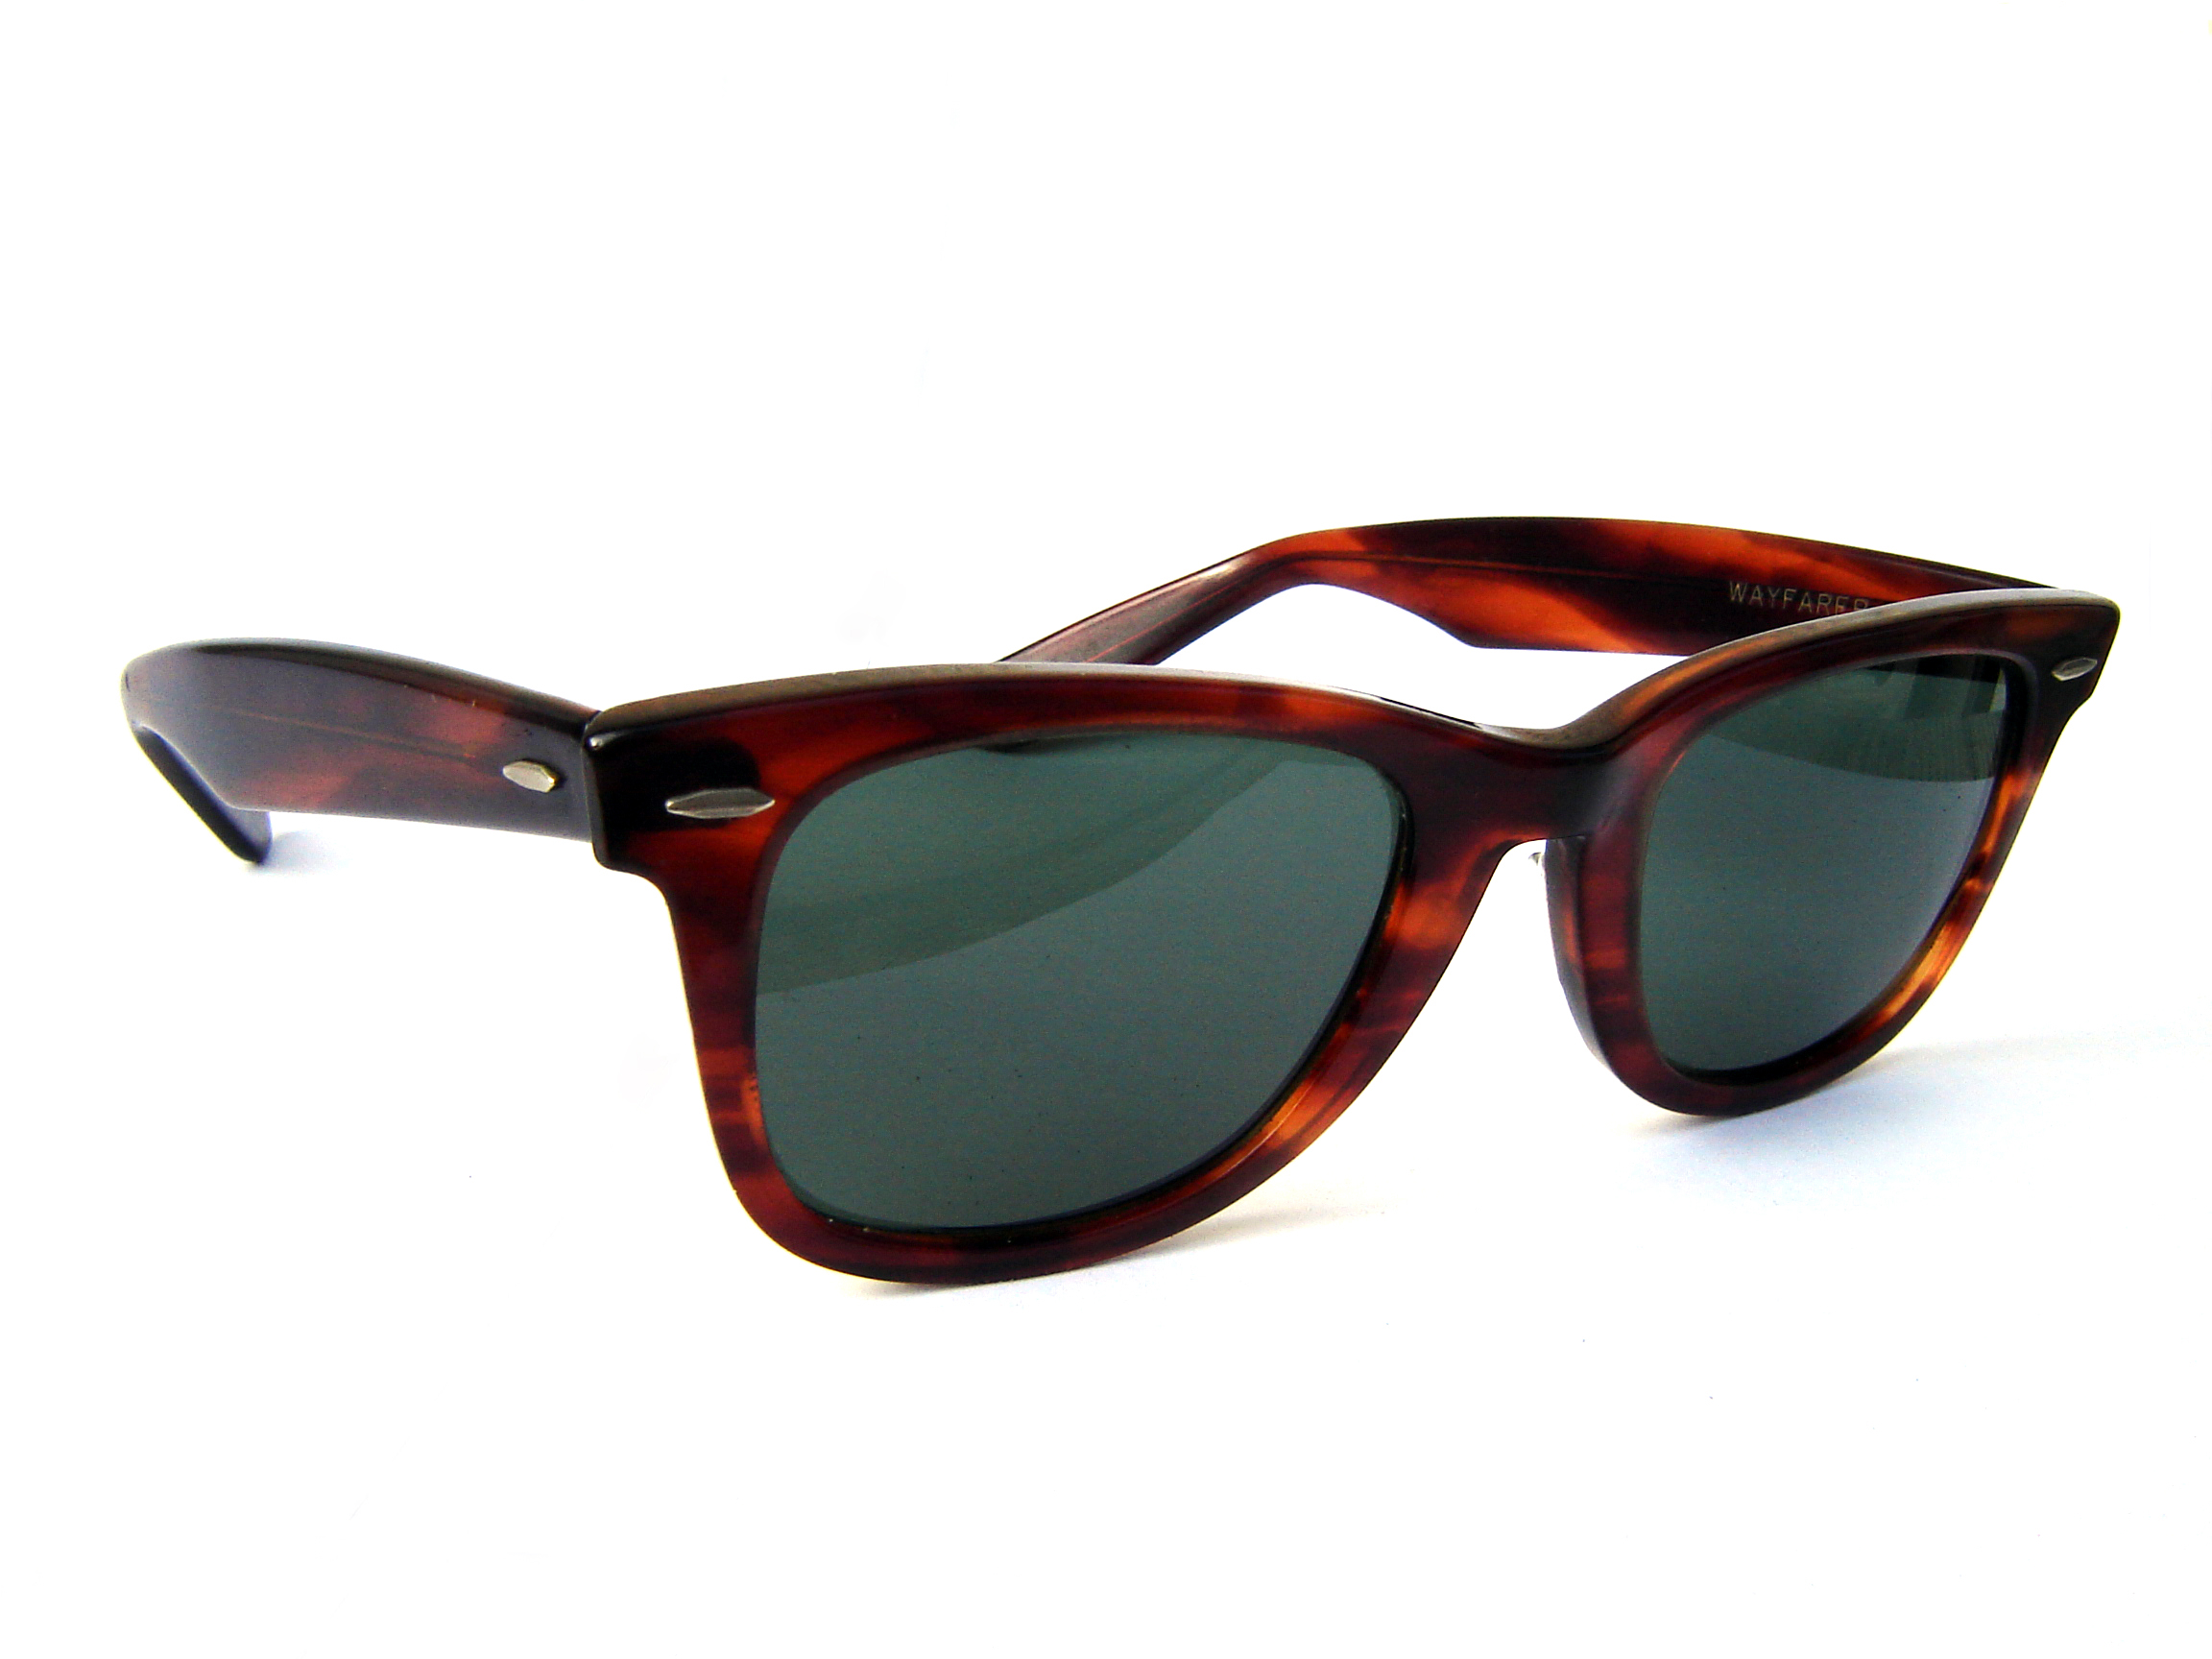 https://upload.wikimedia.org/wikipedia/commons/6/6f/RayBanWayfarer5022sunglasses.JPG